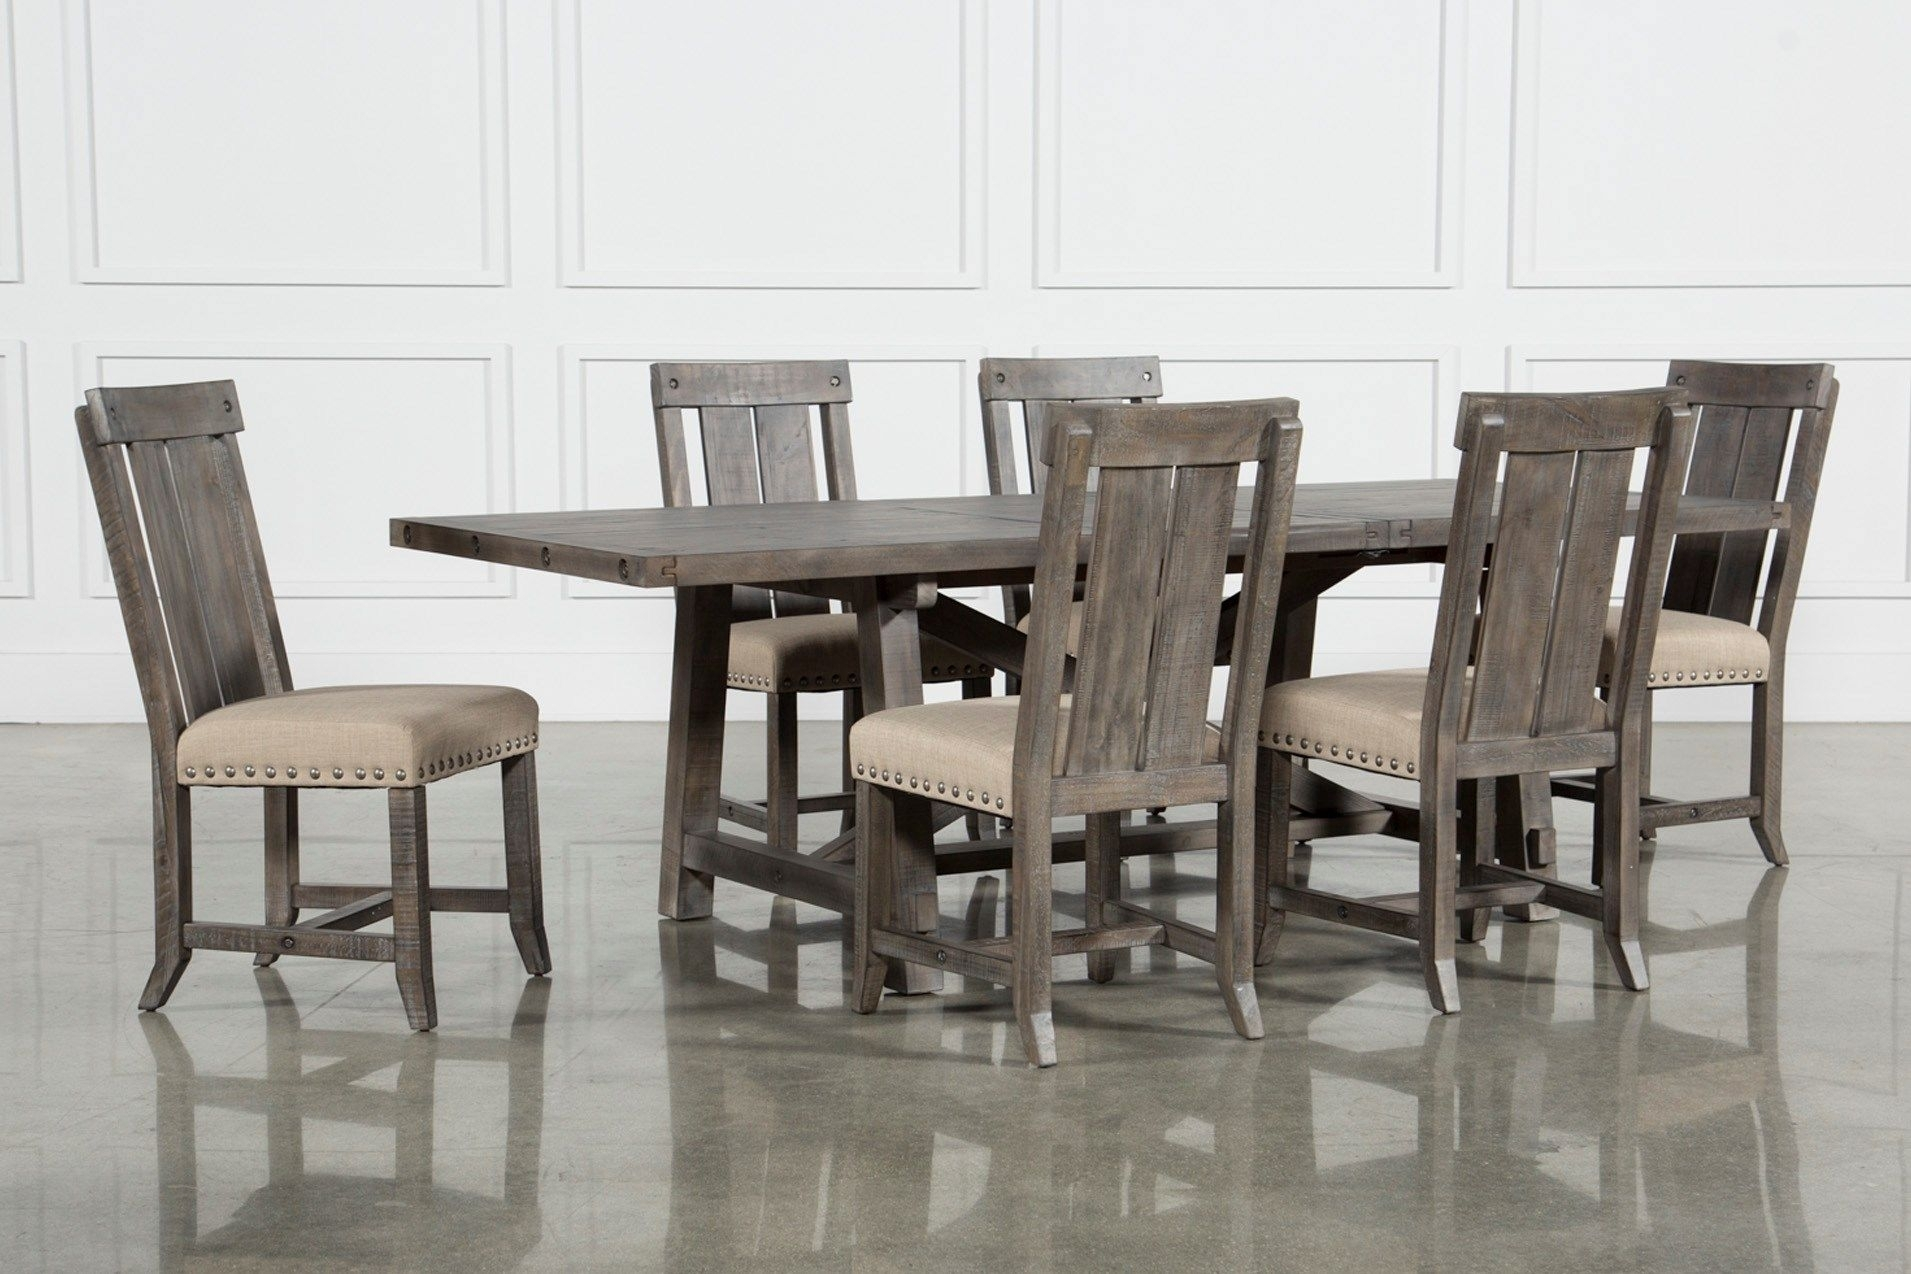 Jaxon Grey 7 Piece Rectangle Extension Dining Set W/wood Chairs With Regard To 2017 Chandler 7 Piece Extension Dining Sets With Wood Side Chairs (Image 15 of 20)